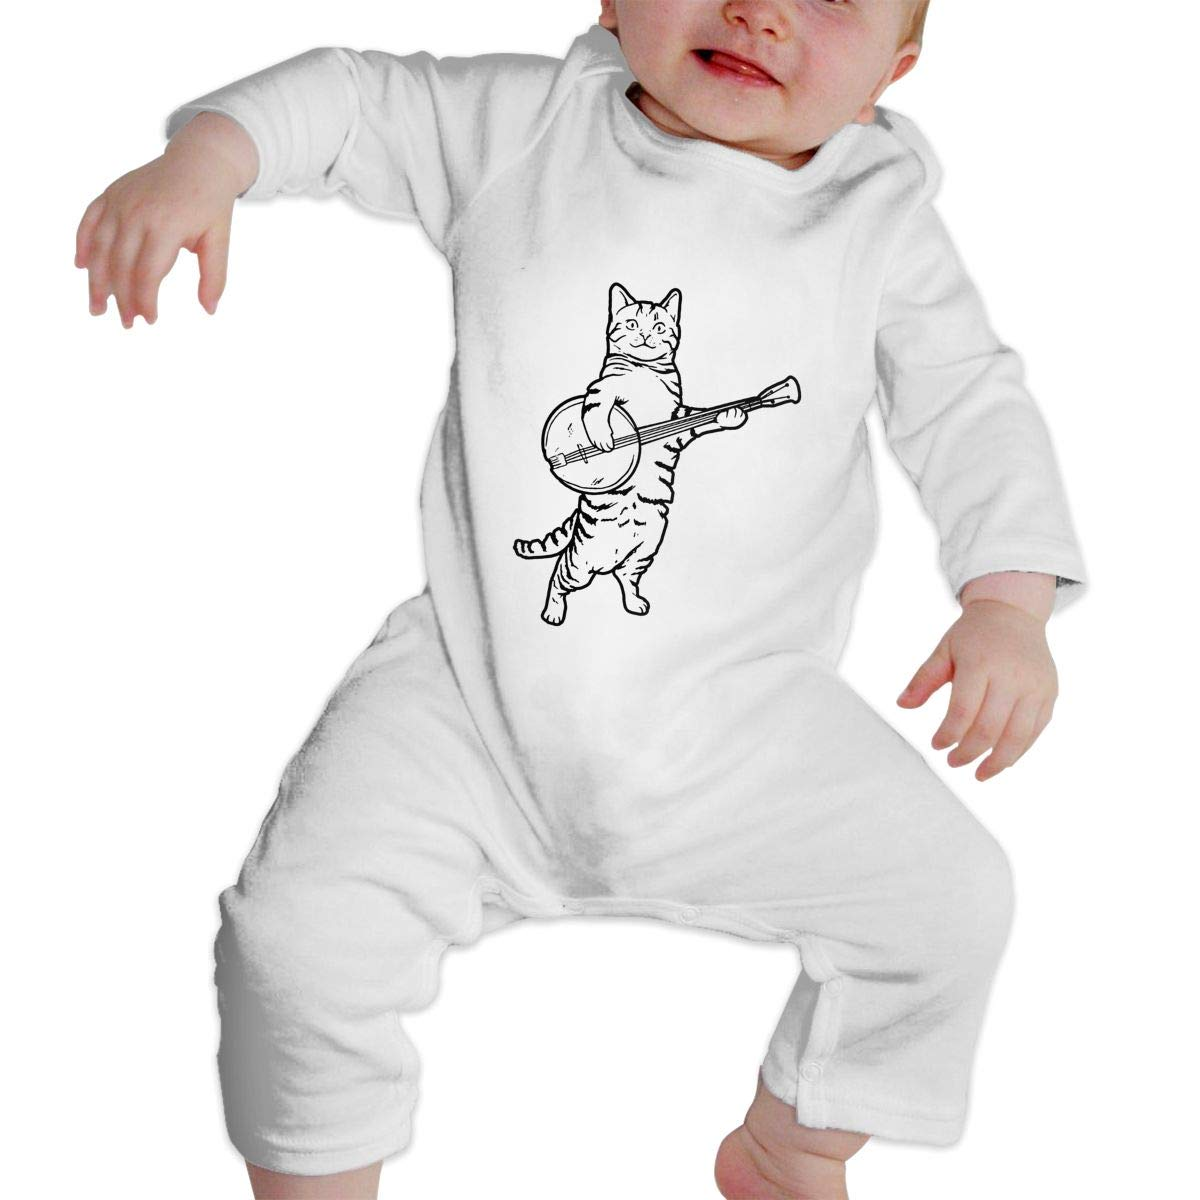 KAYERDELLE Banjo Cat Long-Sleeve Unisex Baby Romper for 6-24 Months Toddler